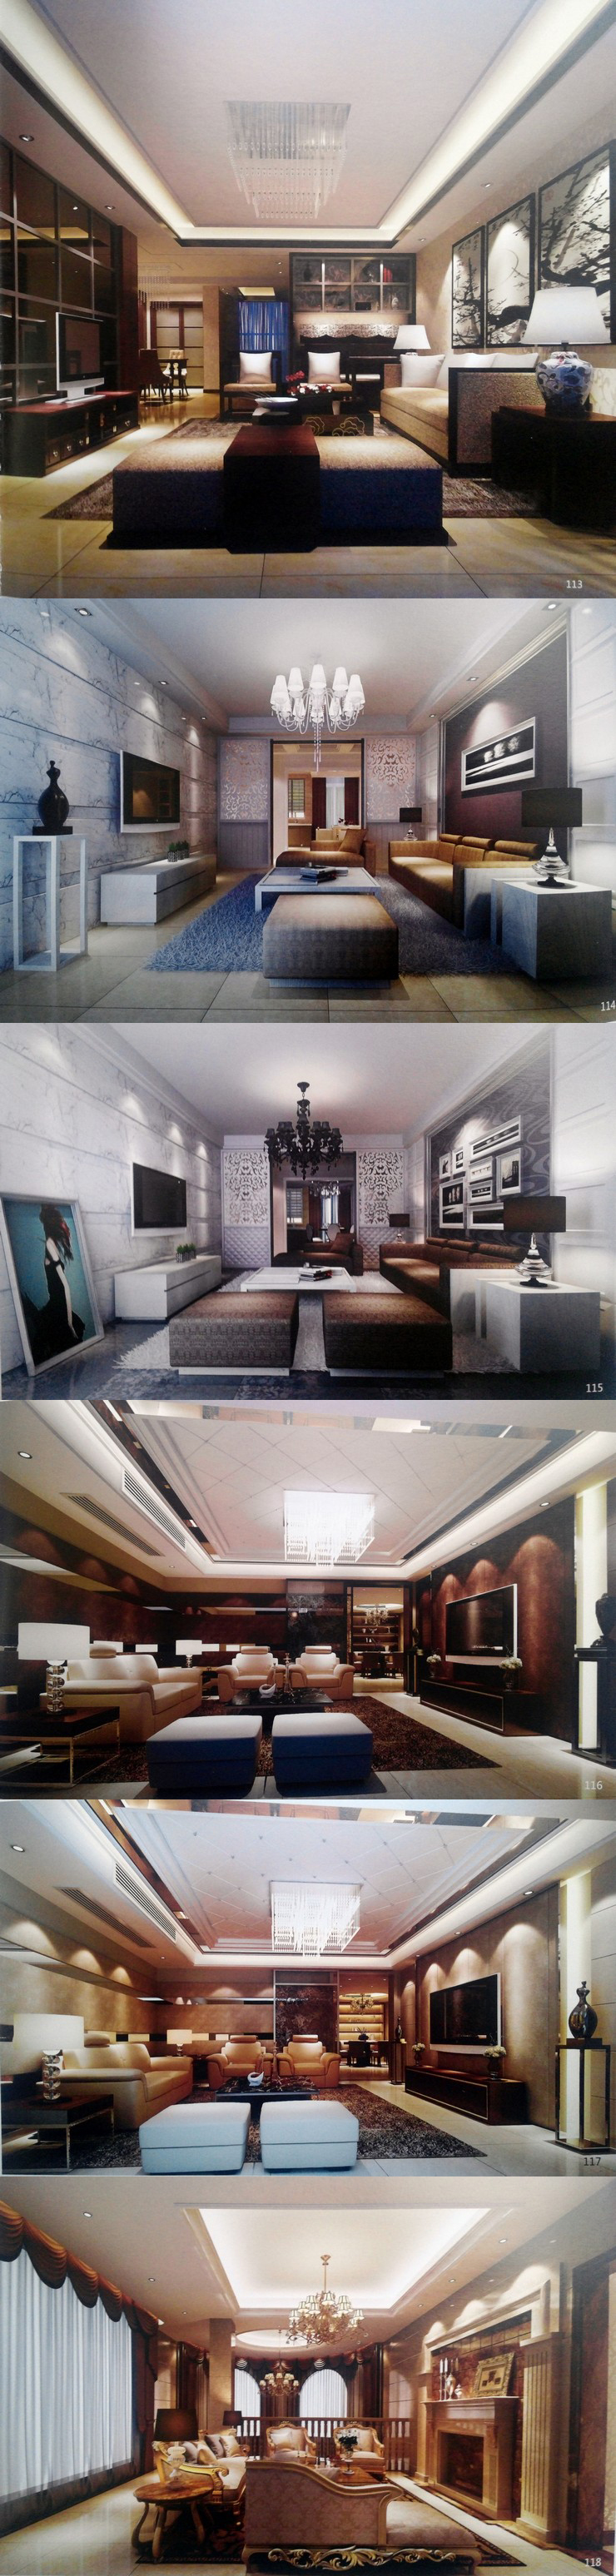 Interior design 3d models integration 2014 vol 2 for 3ds max interior design files